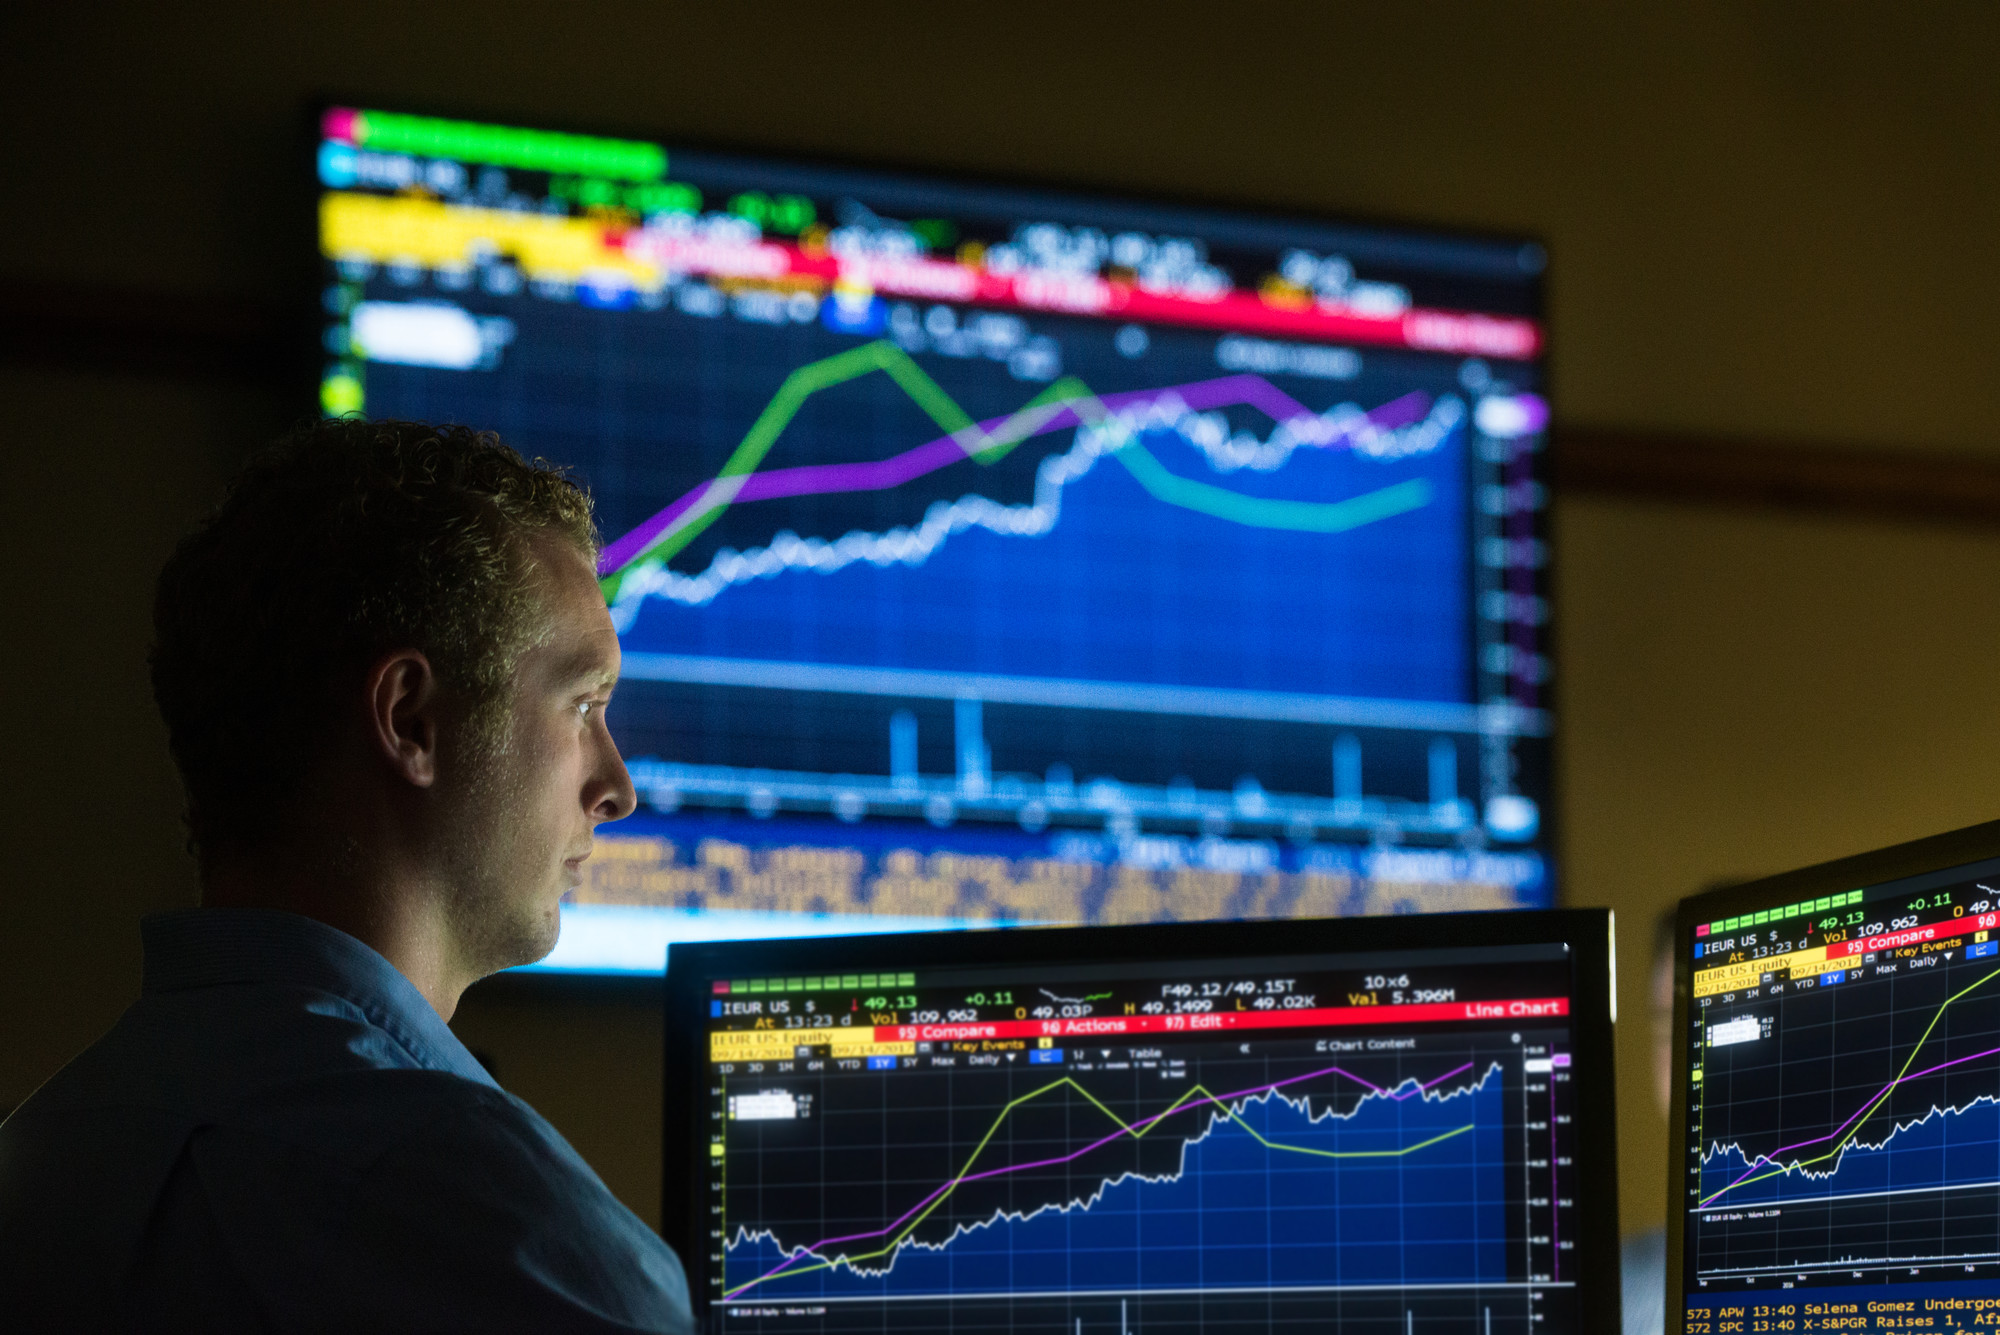 A student looks at graphs of financial information on a computer screen.